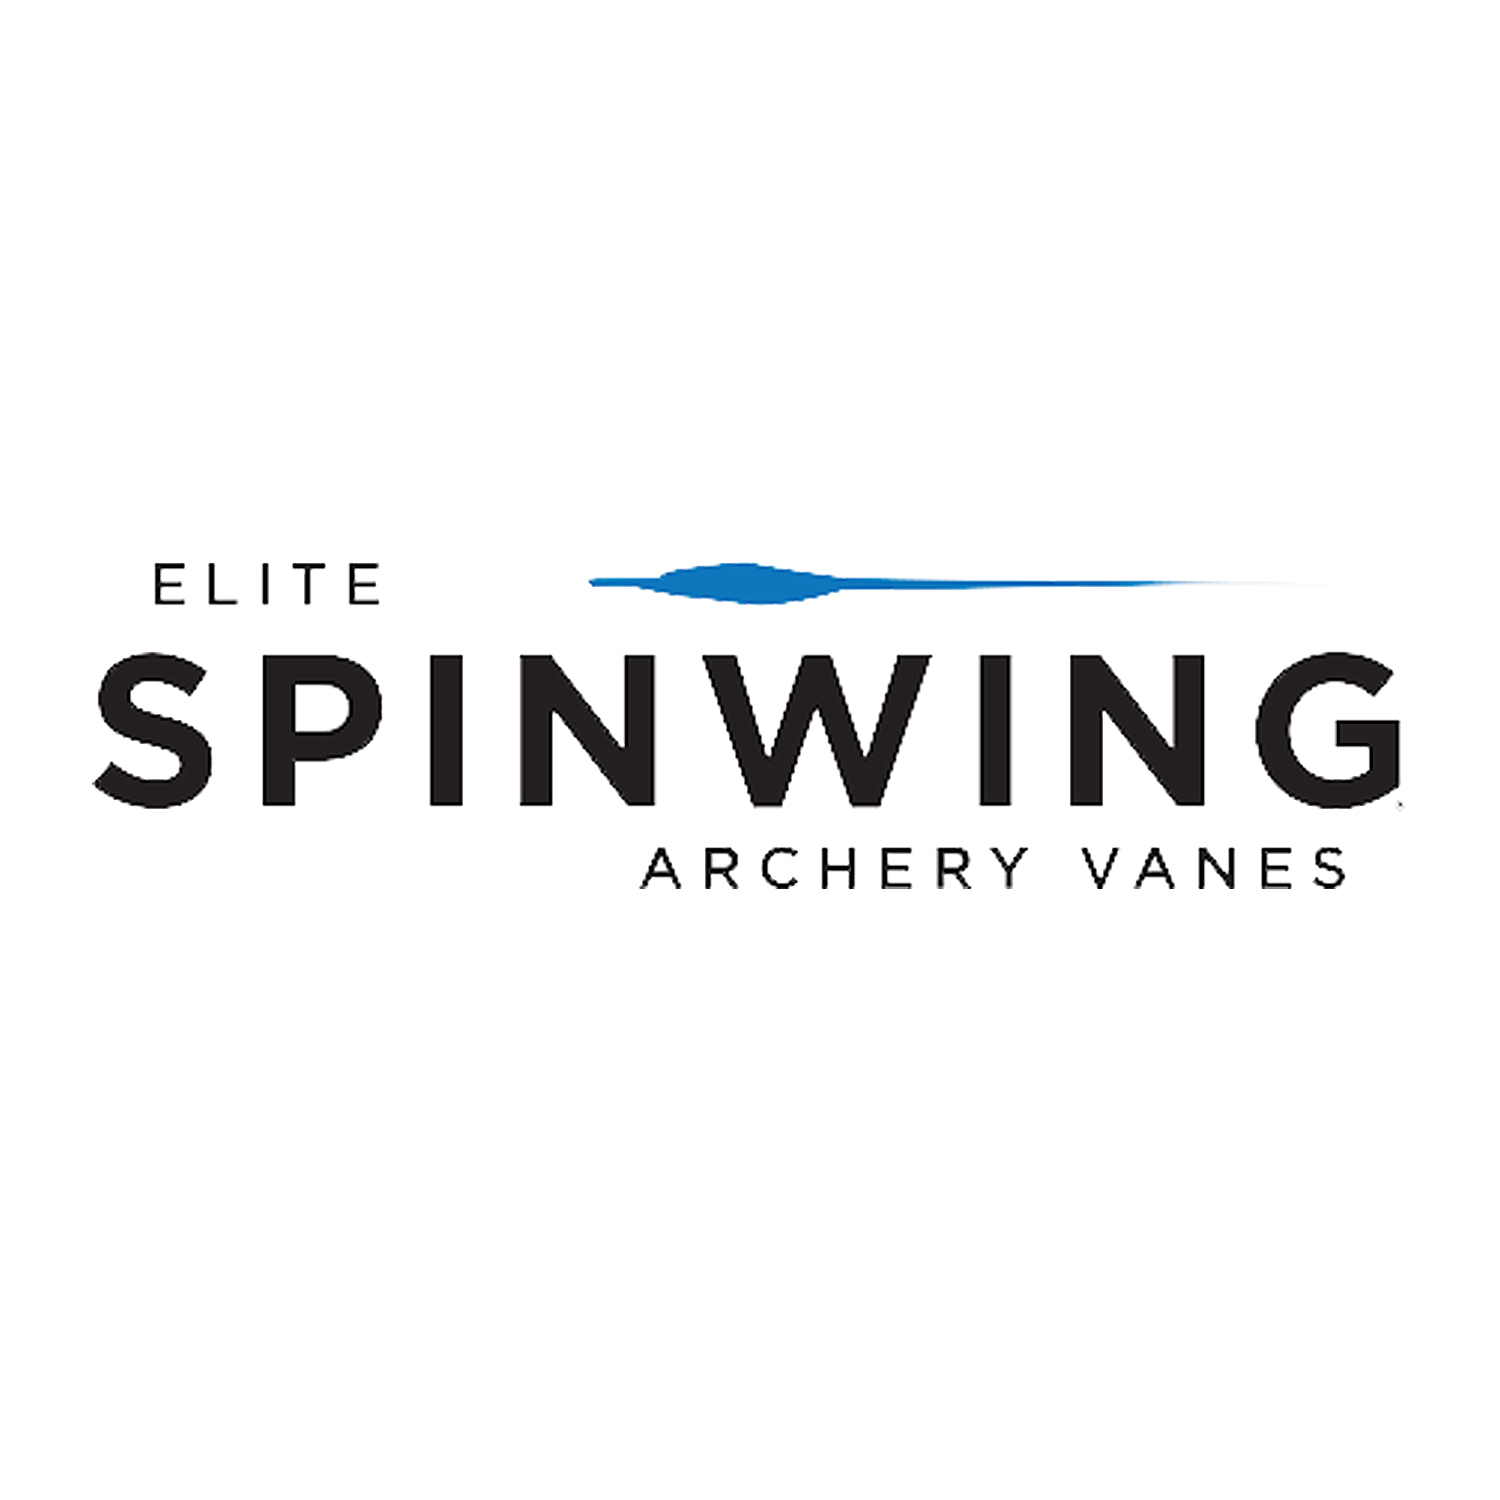 Spin-Wing